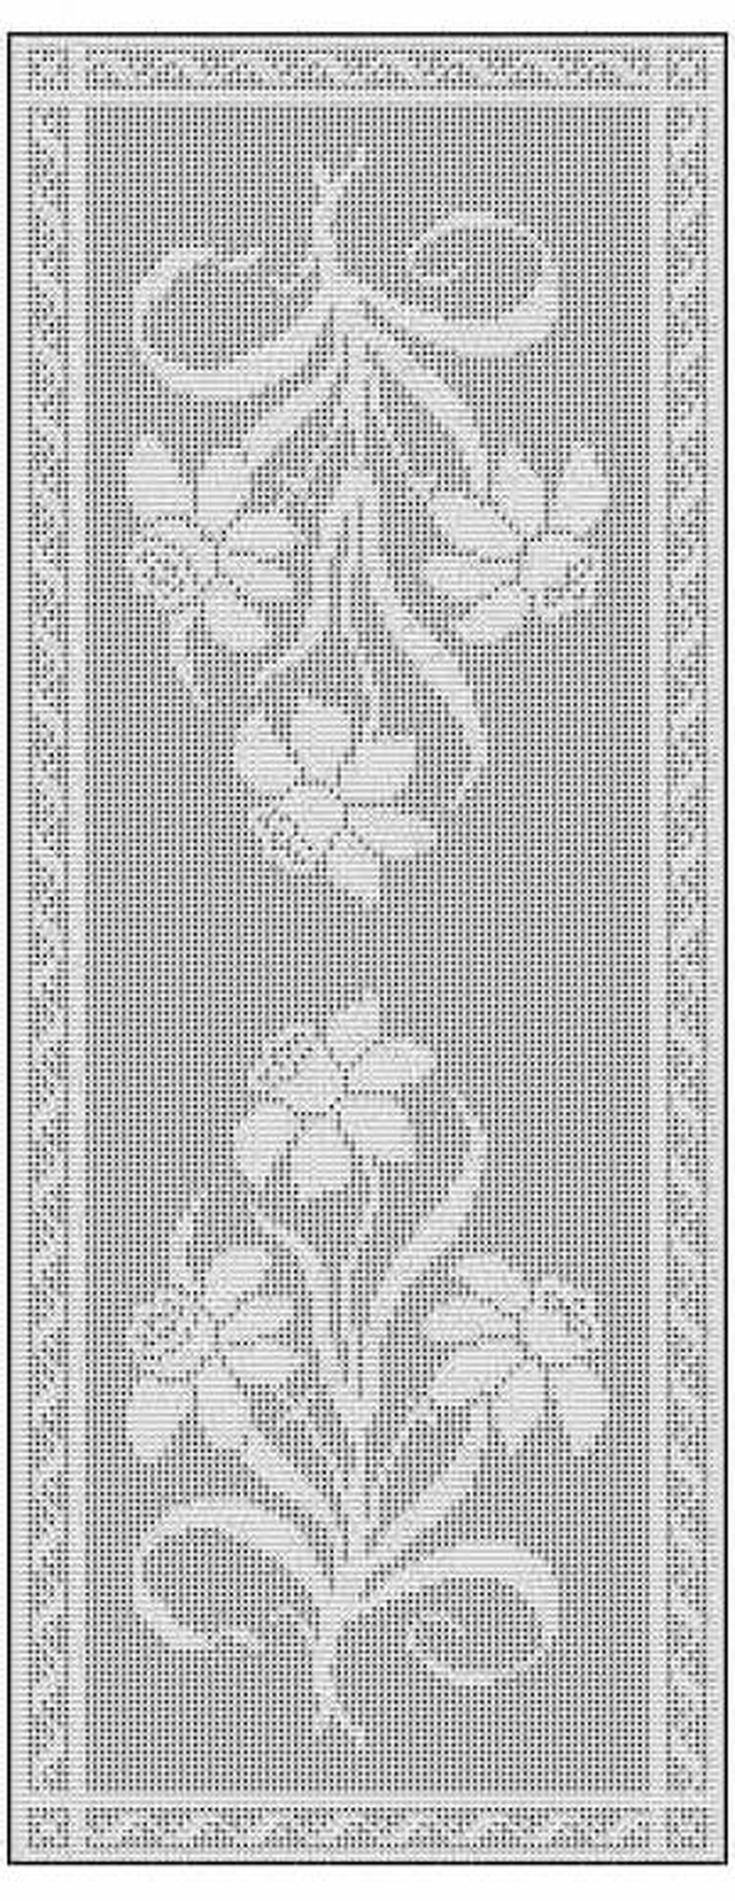 Learn the basics of filet crochet filet crochet table runner free chart pattern ccuart Images